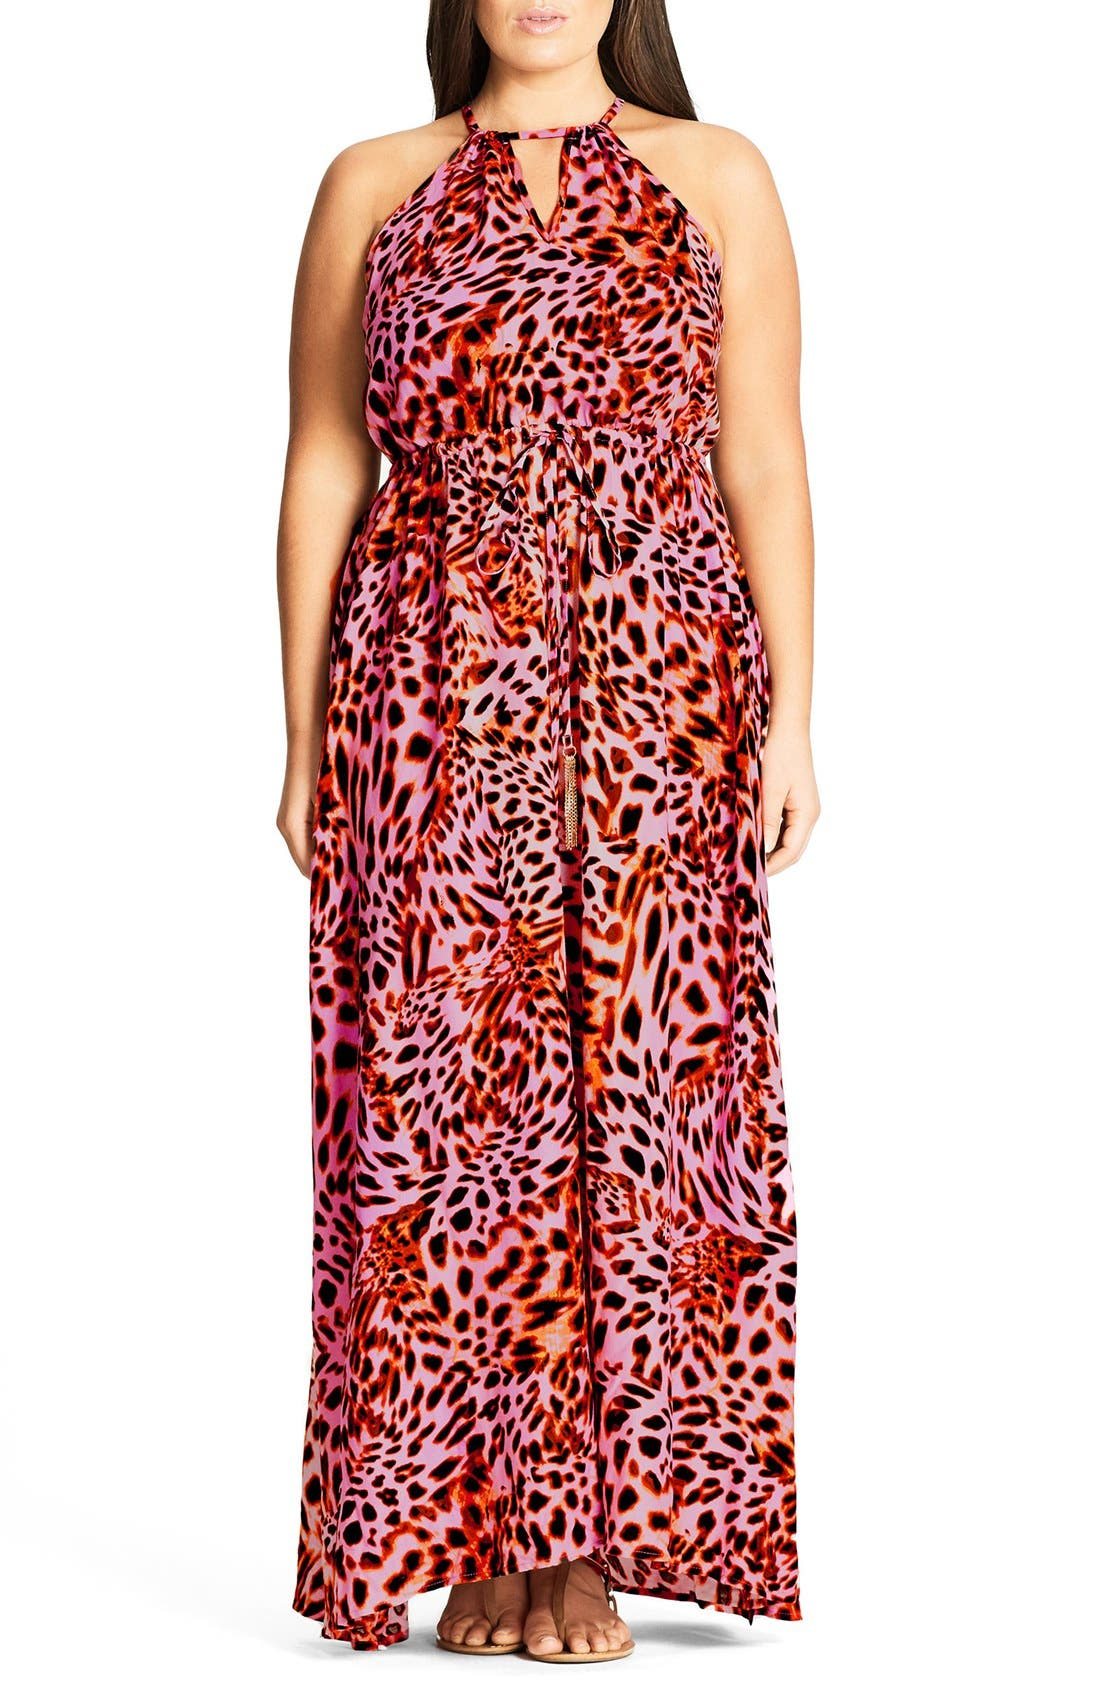 CITY CHIC Leopard Drawstring Waist Maxi Dress